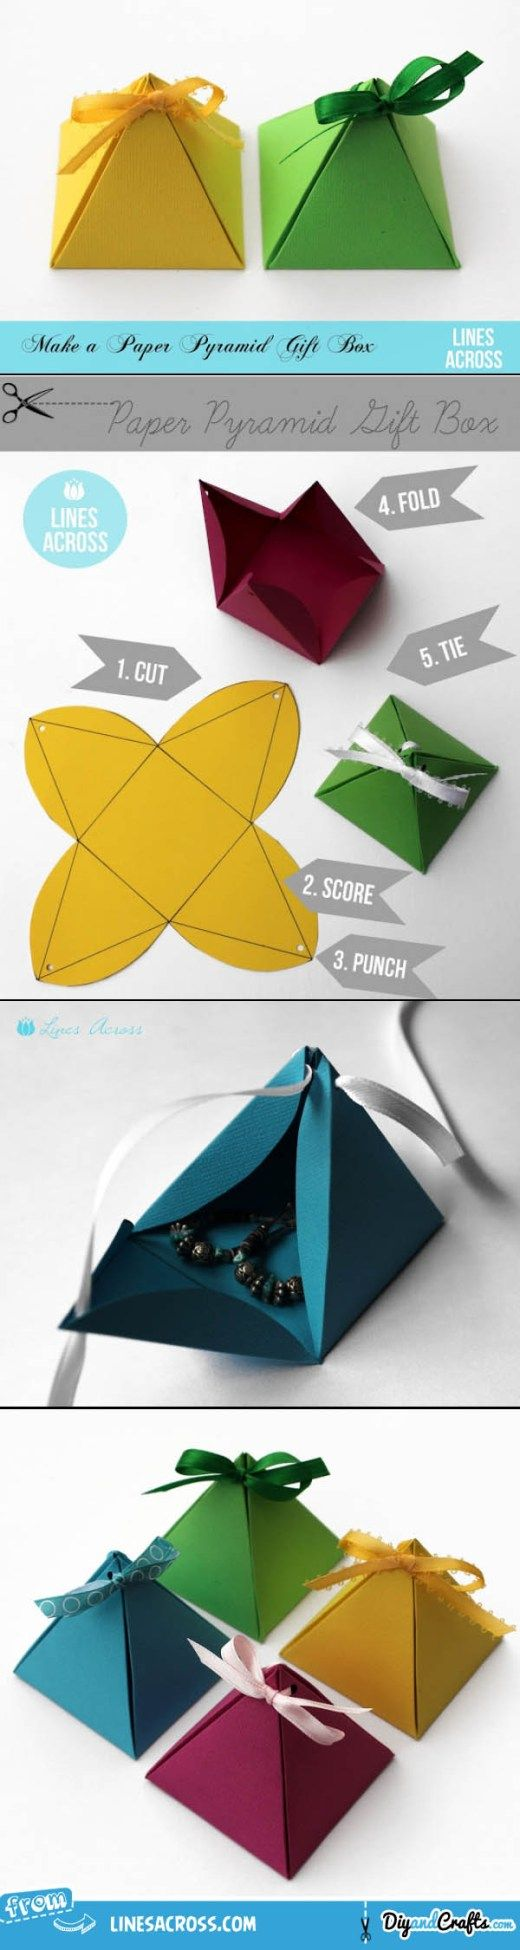 Paper Pyramid #Gift Boxes | #DIY #crafts